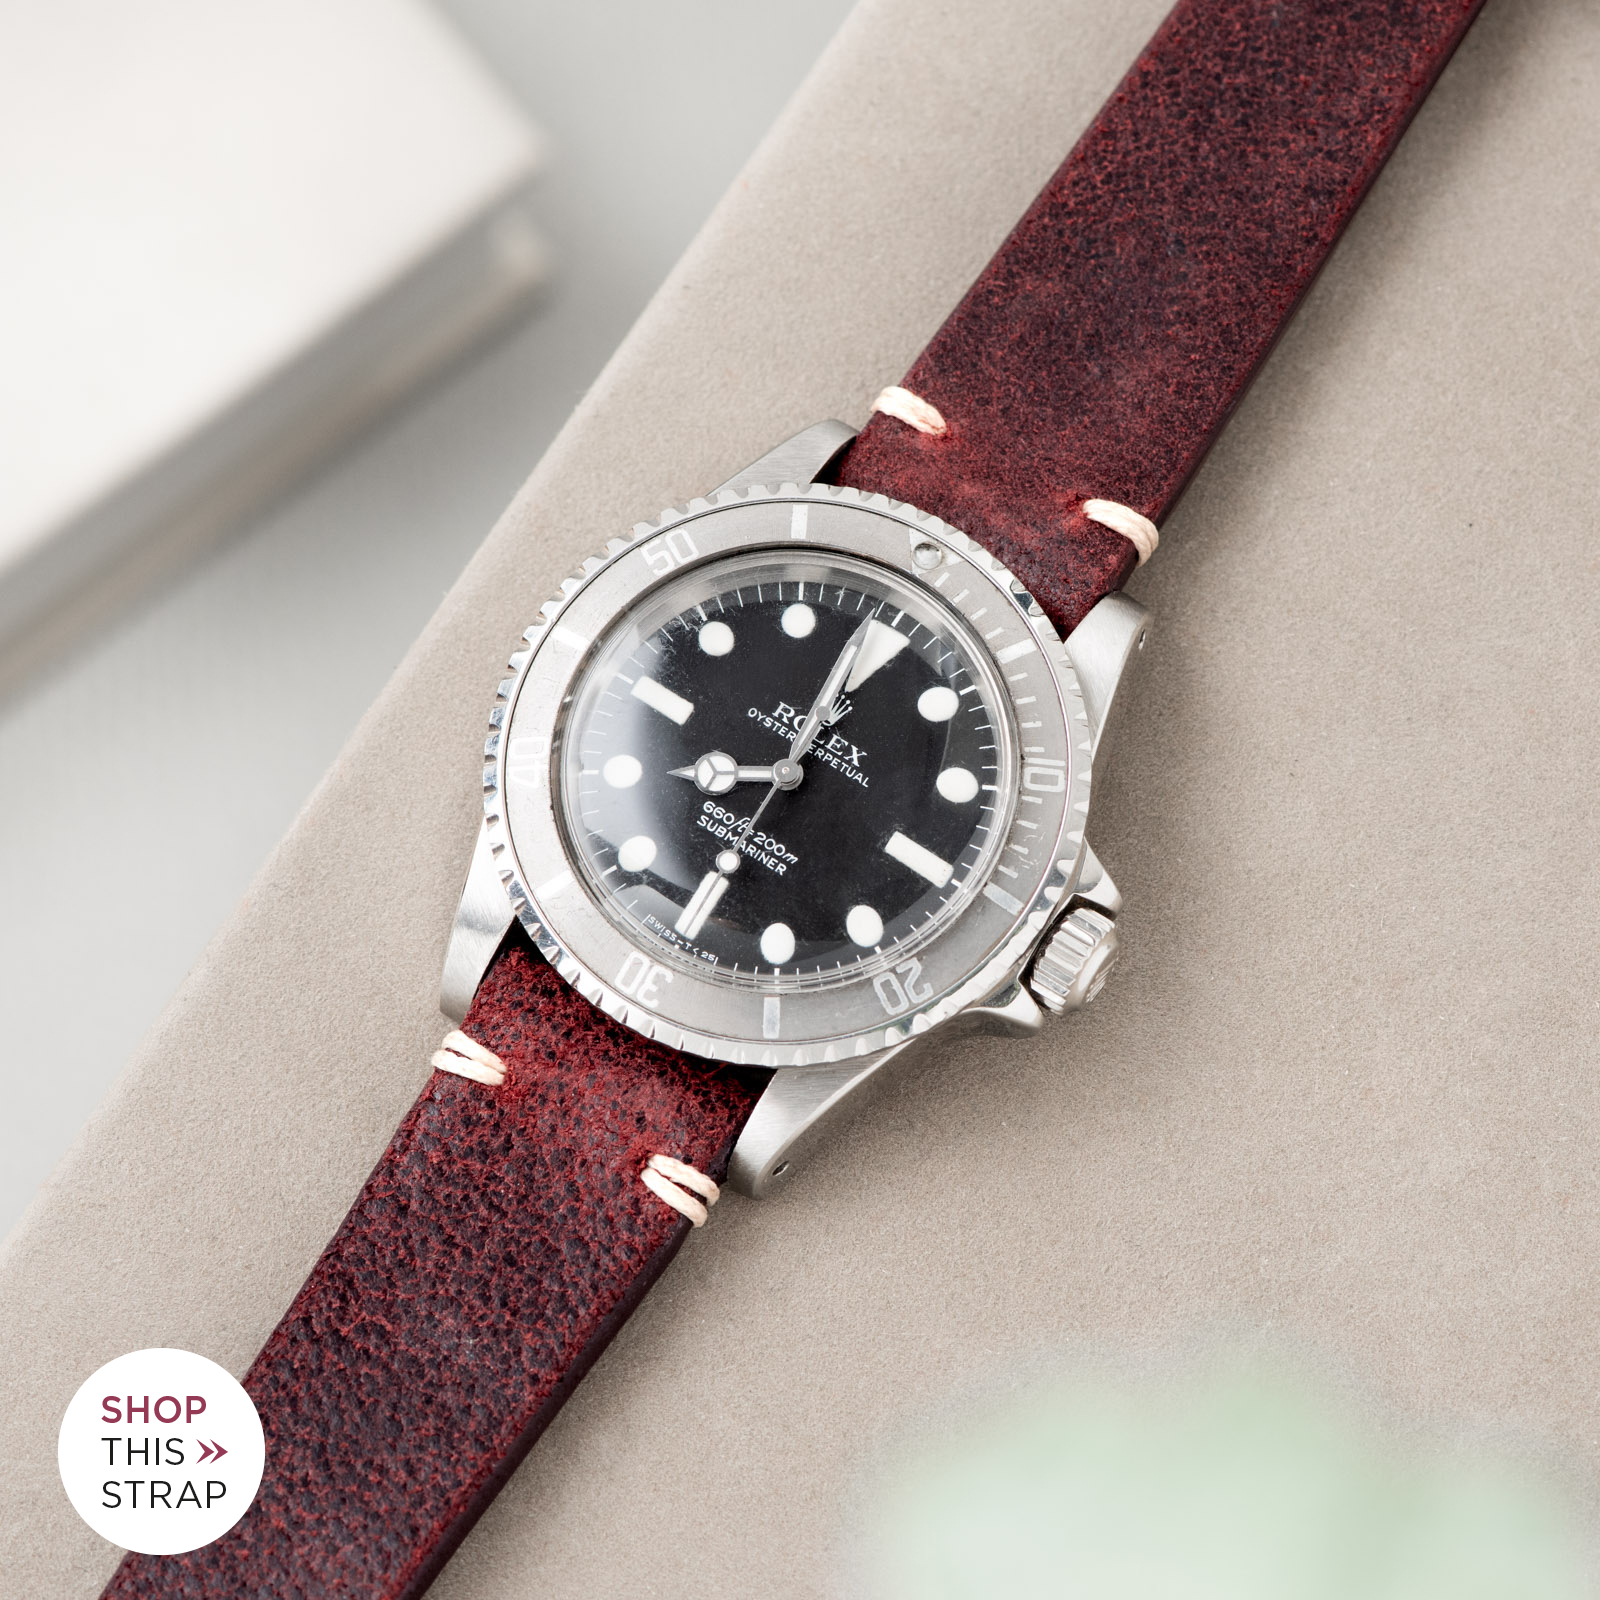 Bulang and Sons_Strap Guide_Rolex Submariner 5513 Faded_Crackle Burgundy Red Leather Watch Strap